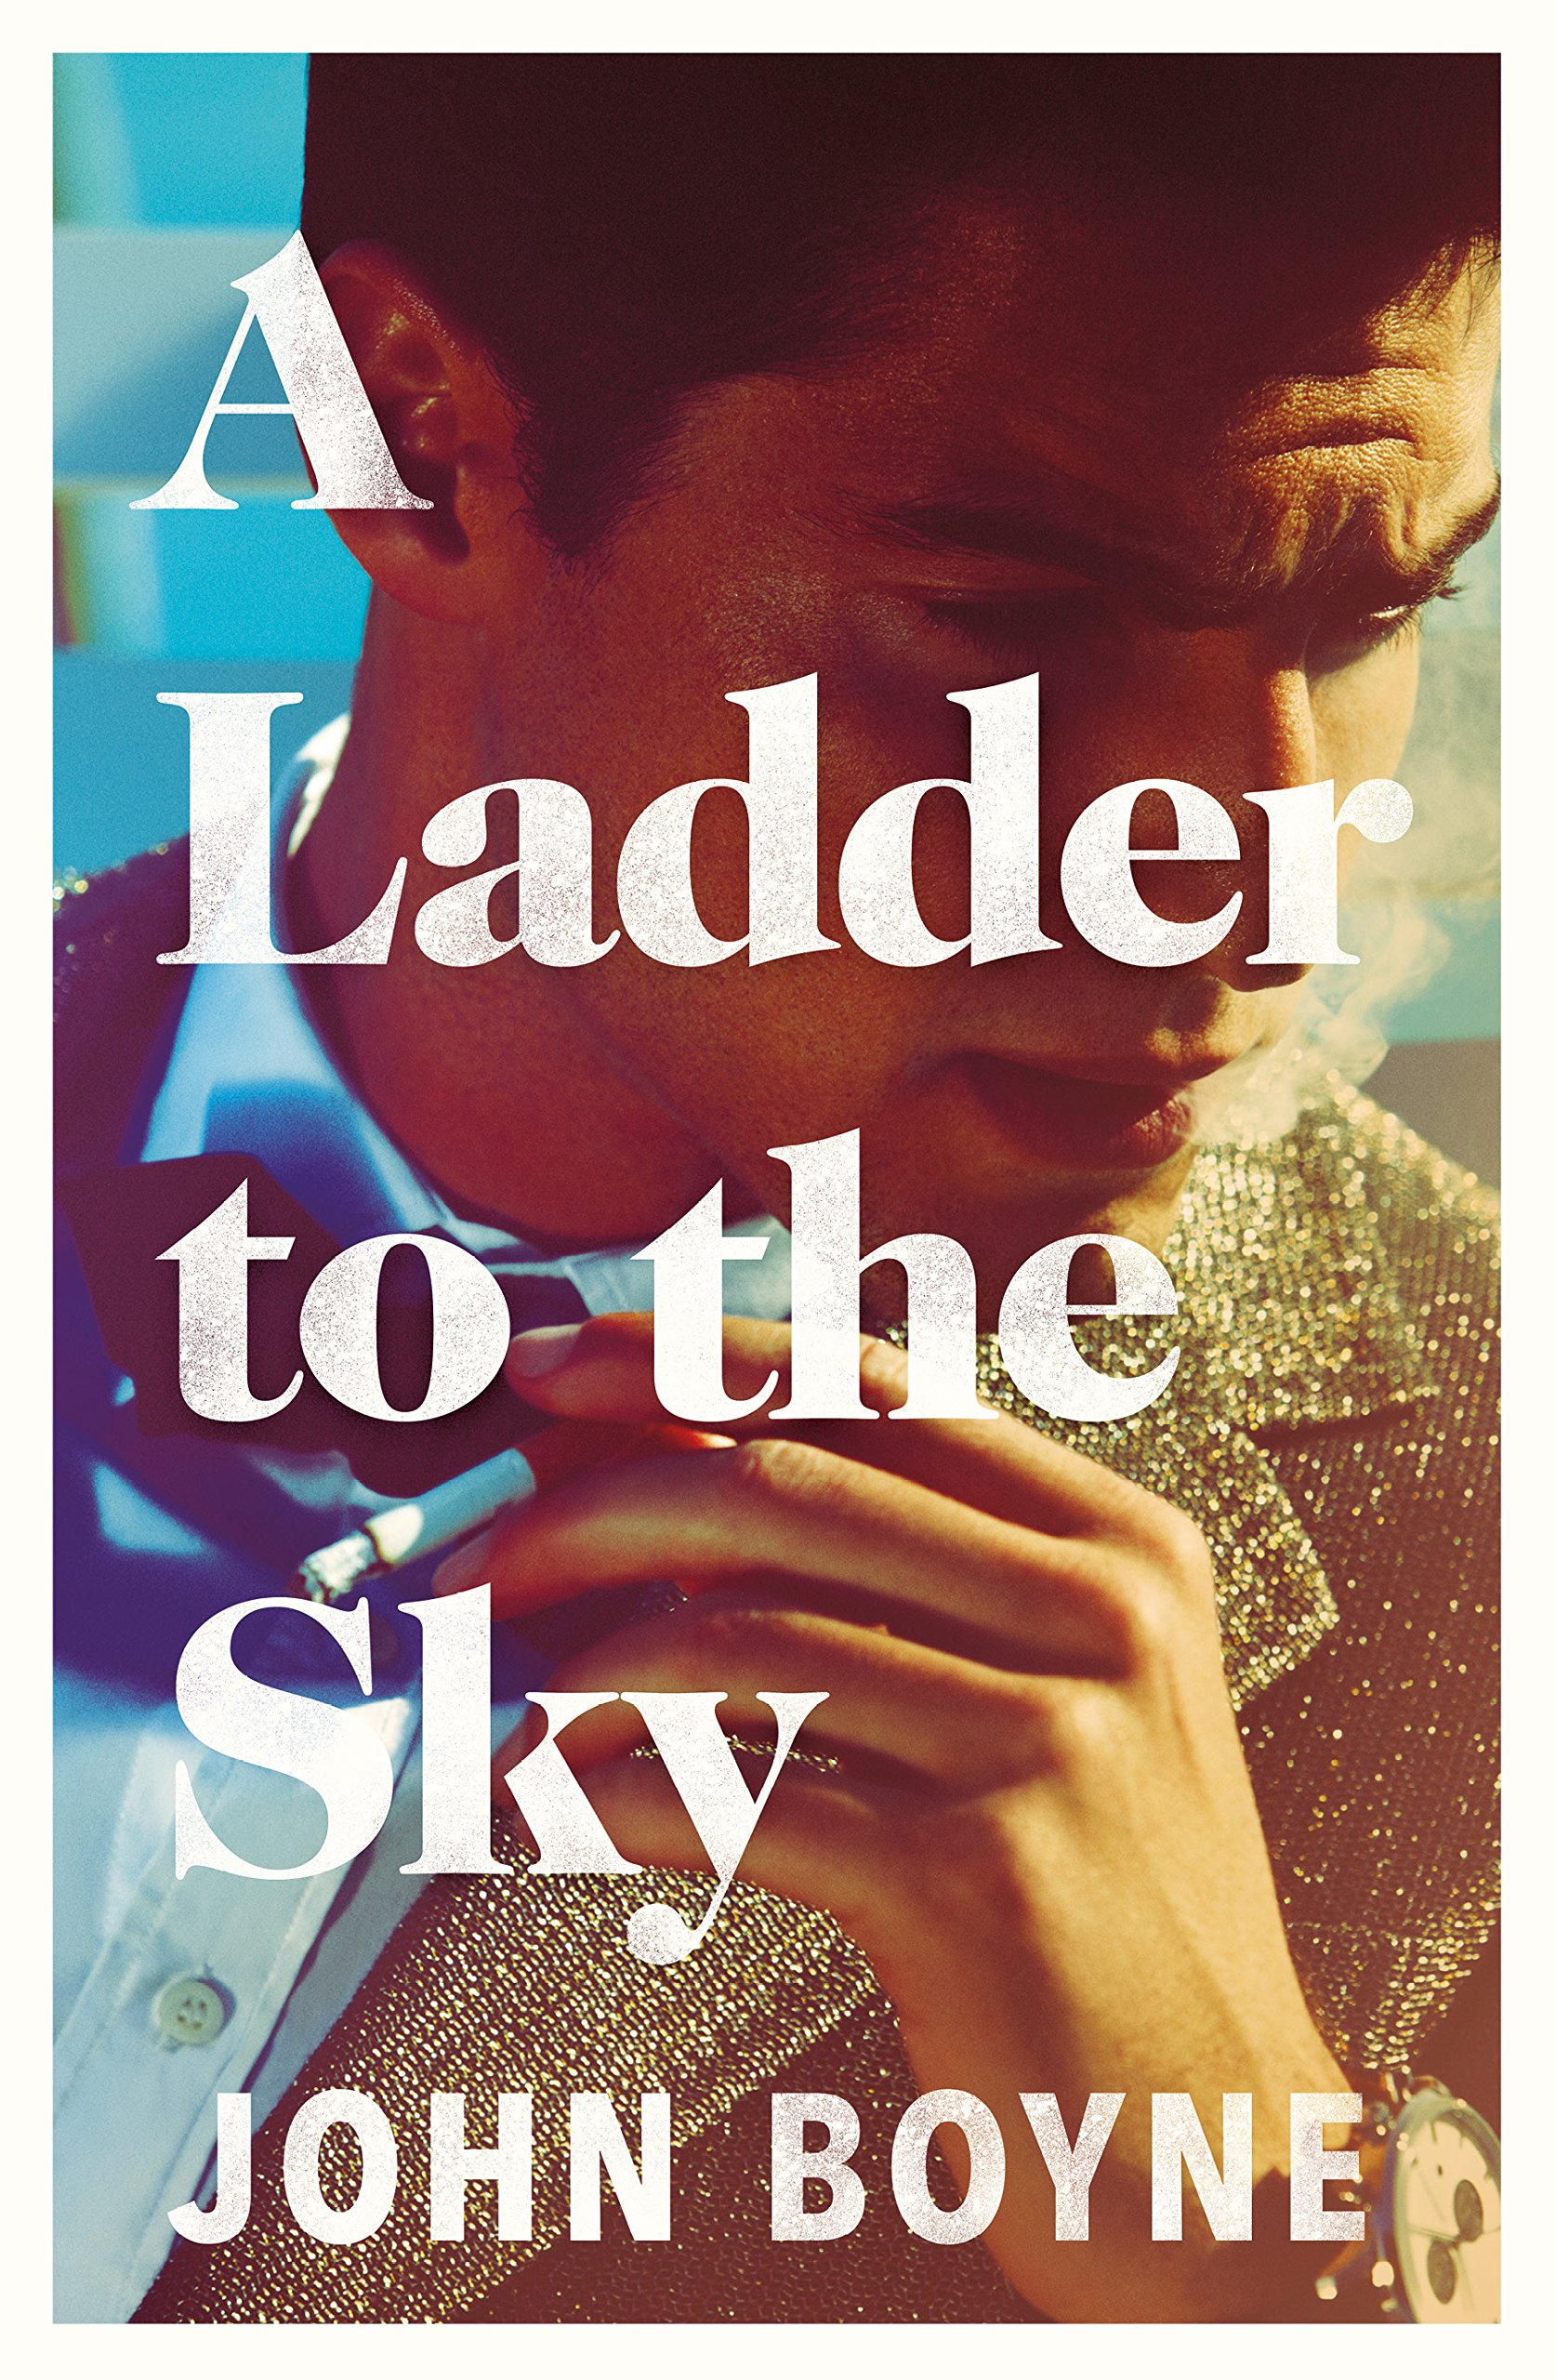 Image result for ladder to the sky